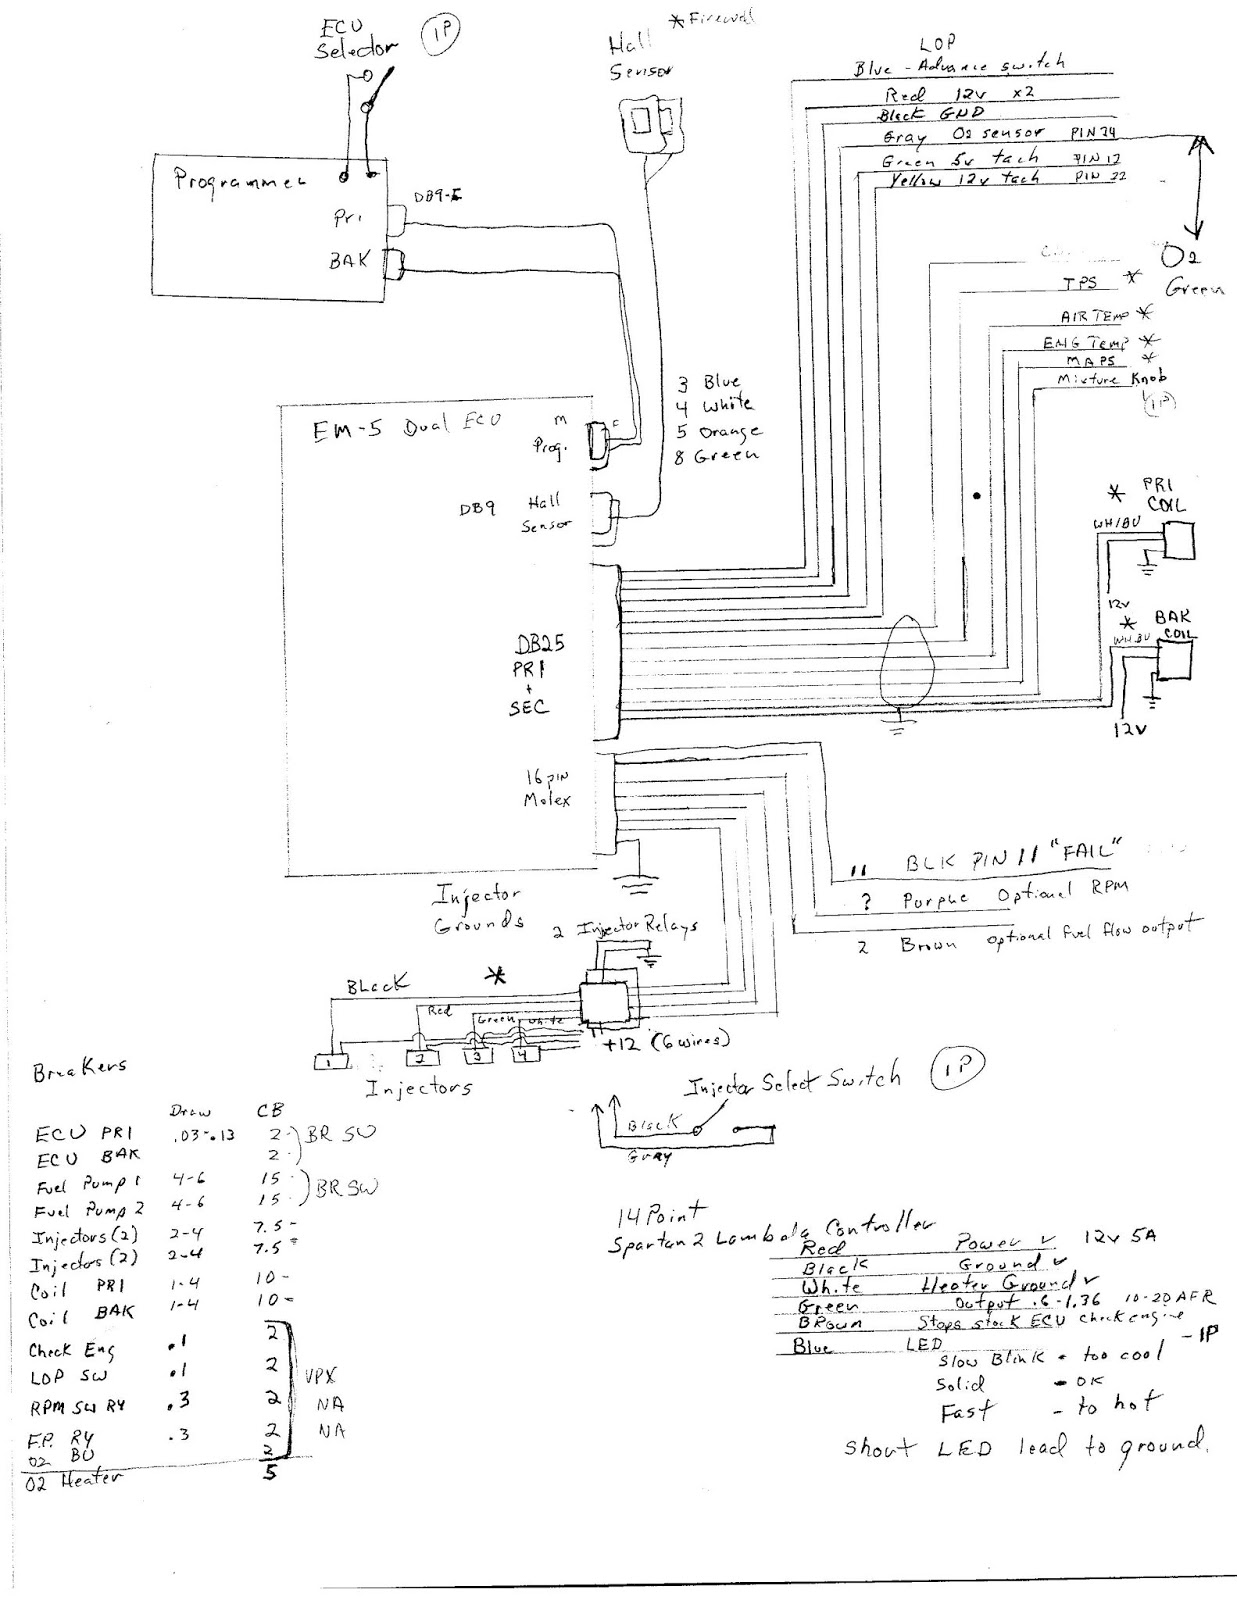 small resolution of pin assignments for firewall bulkhead connectors and other electrical wiring info